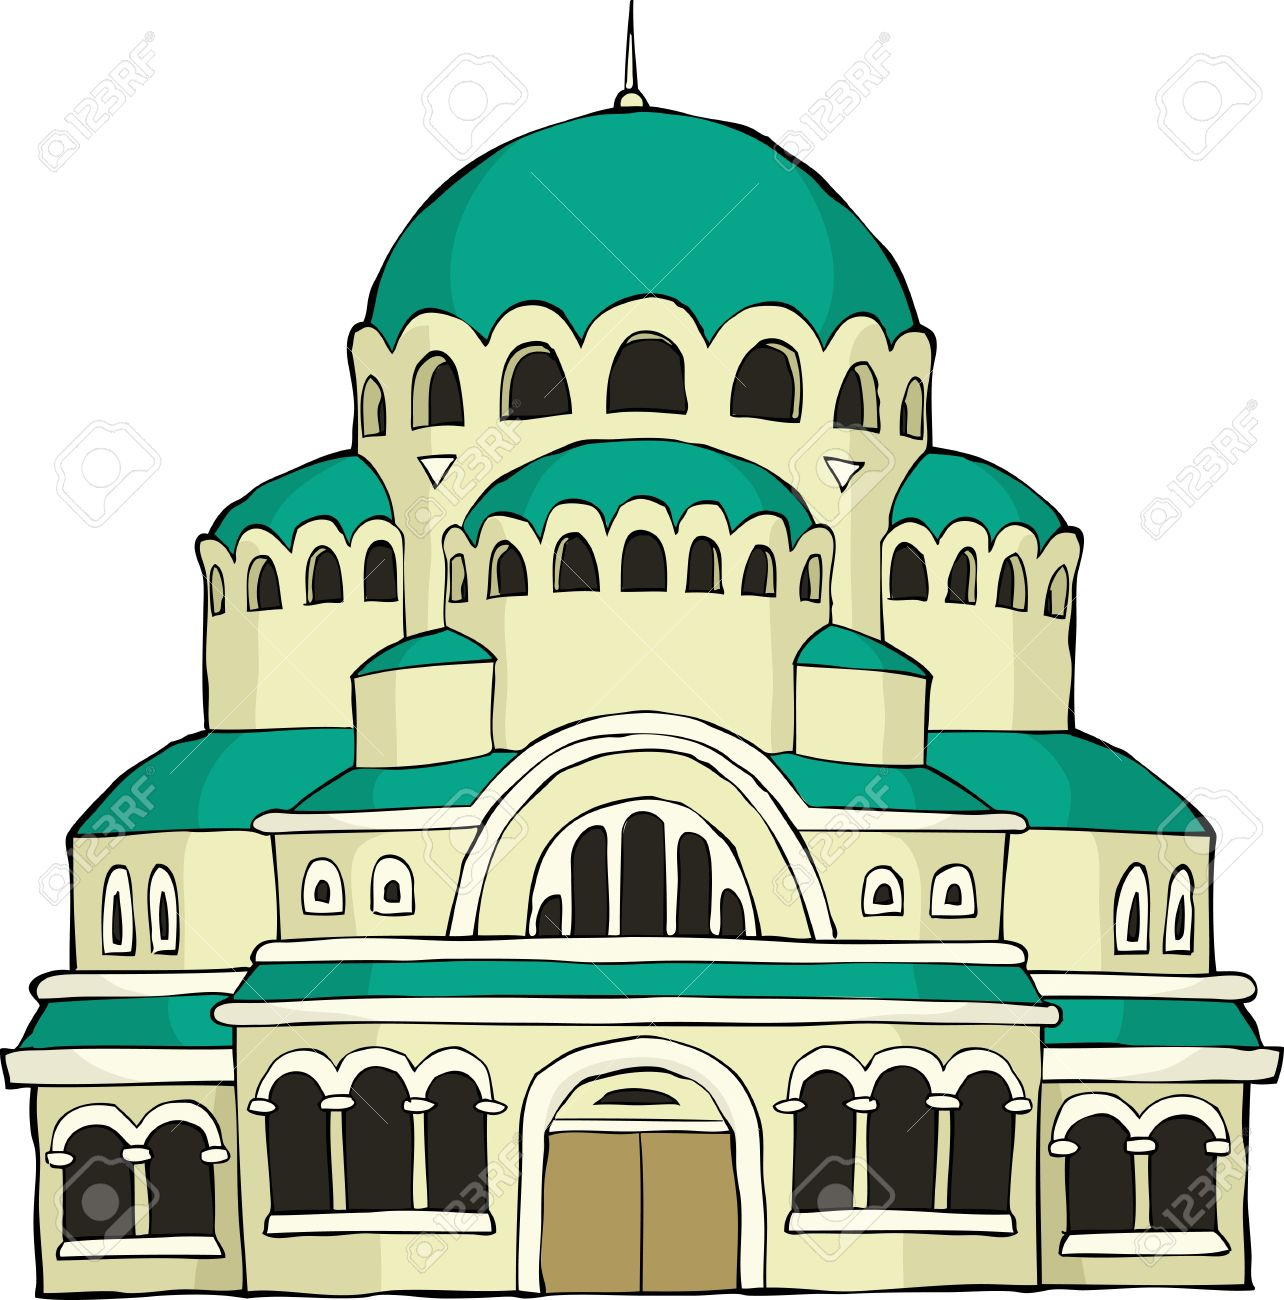 The Byzantine Church On A White Background Vector Illustration.